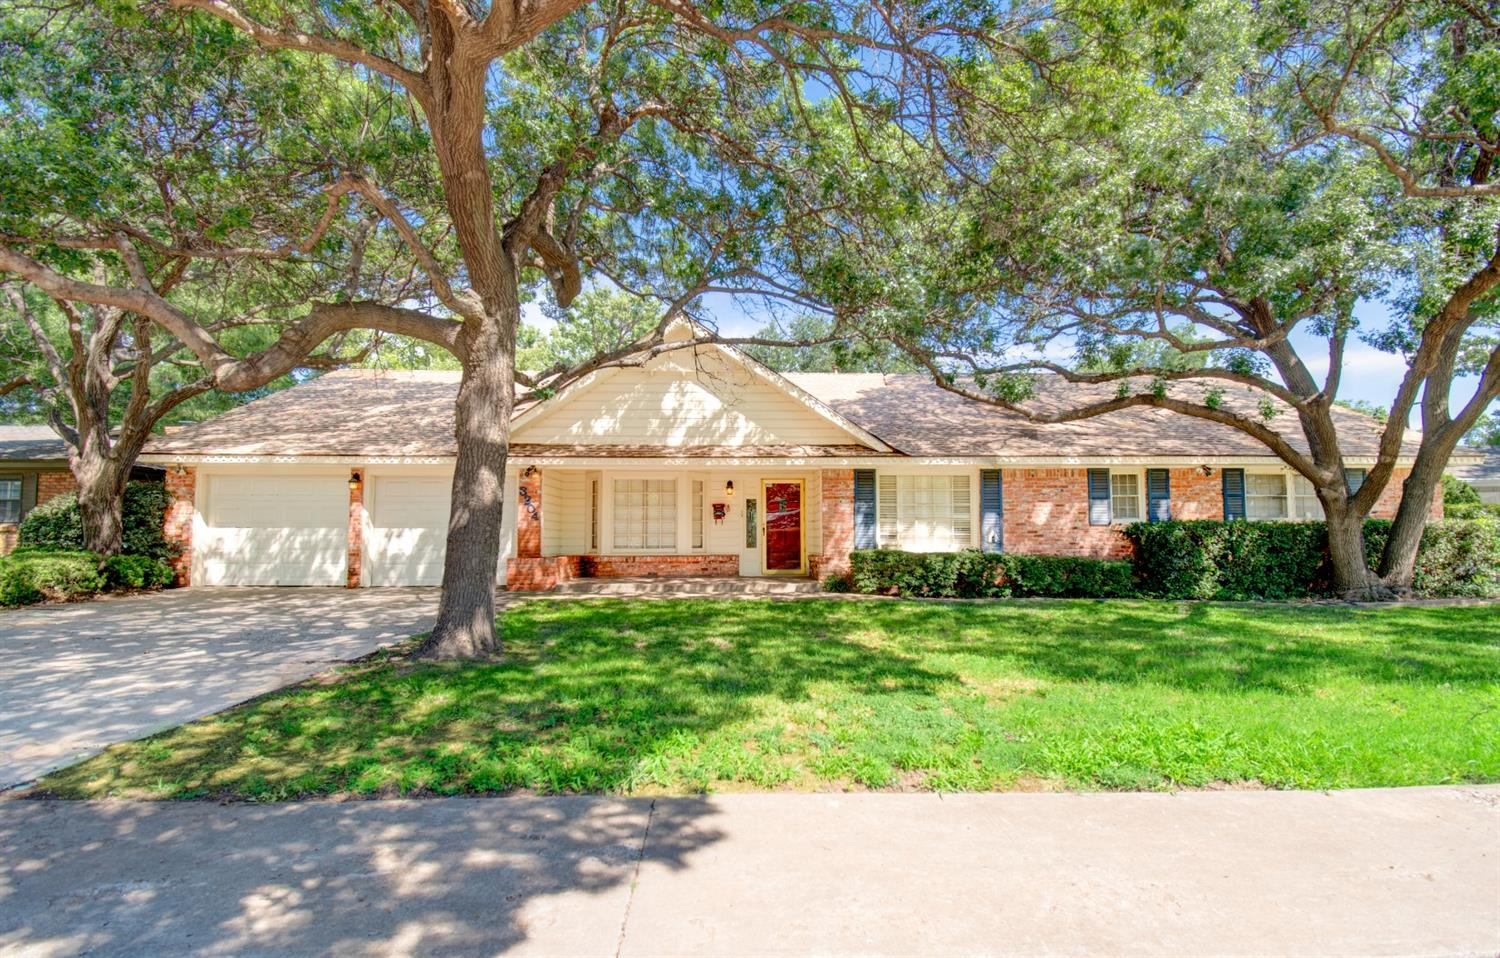 Large home in established neighborhood in Central Lubbock.  This home has plenty of room for family and entertaining.  Potential mother in law suite off of laundry room and a large bonus room above the garage make this a must see.  Another plus for this one is that it is in the Miller Elem attendance zone.